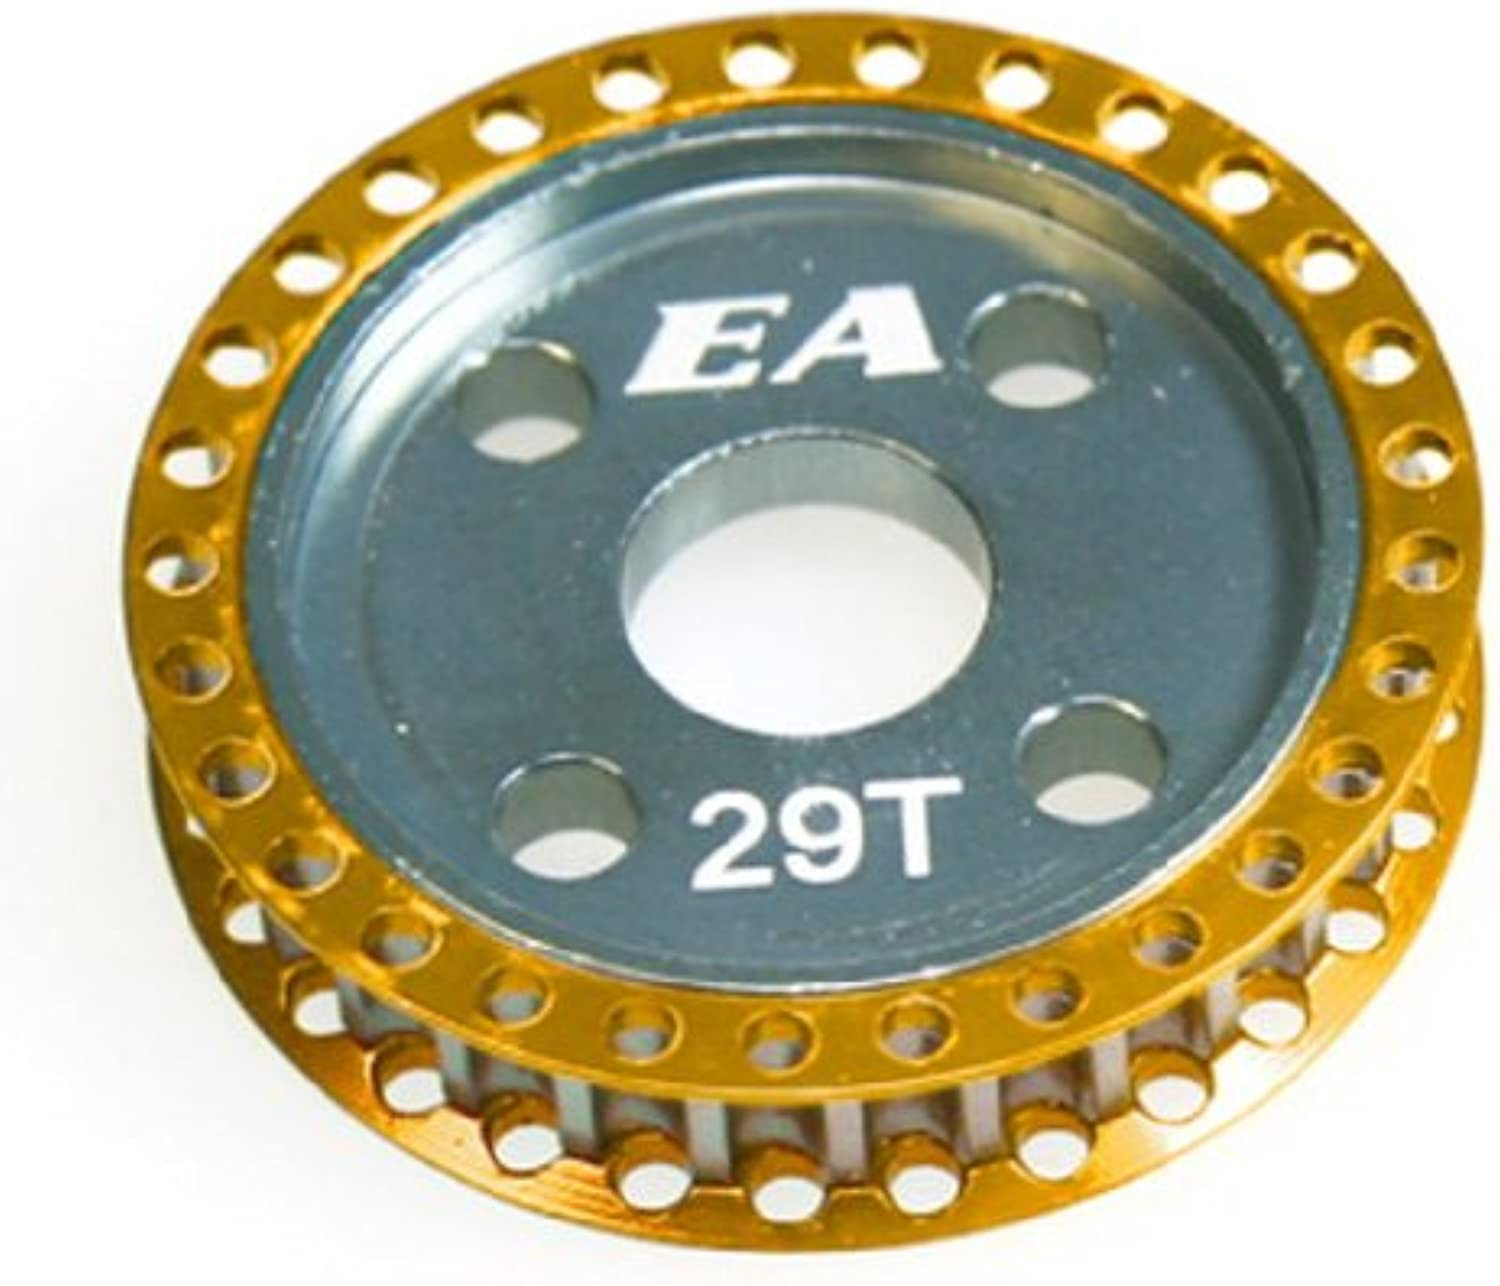 Eagle model Strong solid axle pulley 29T [gold]    3860 for 3860P1829TGO